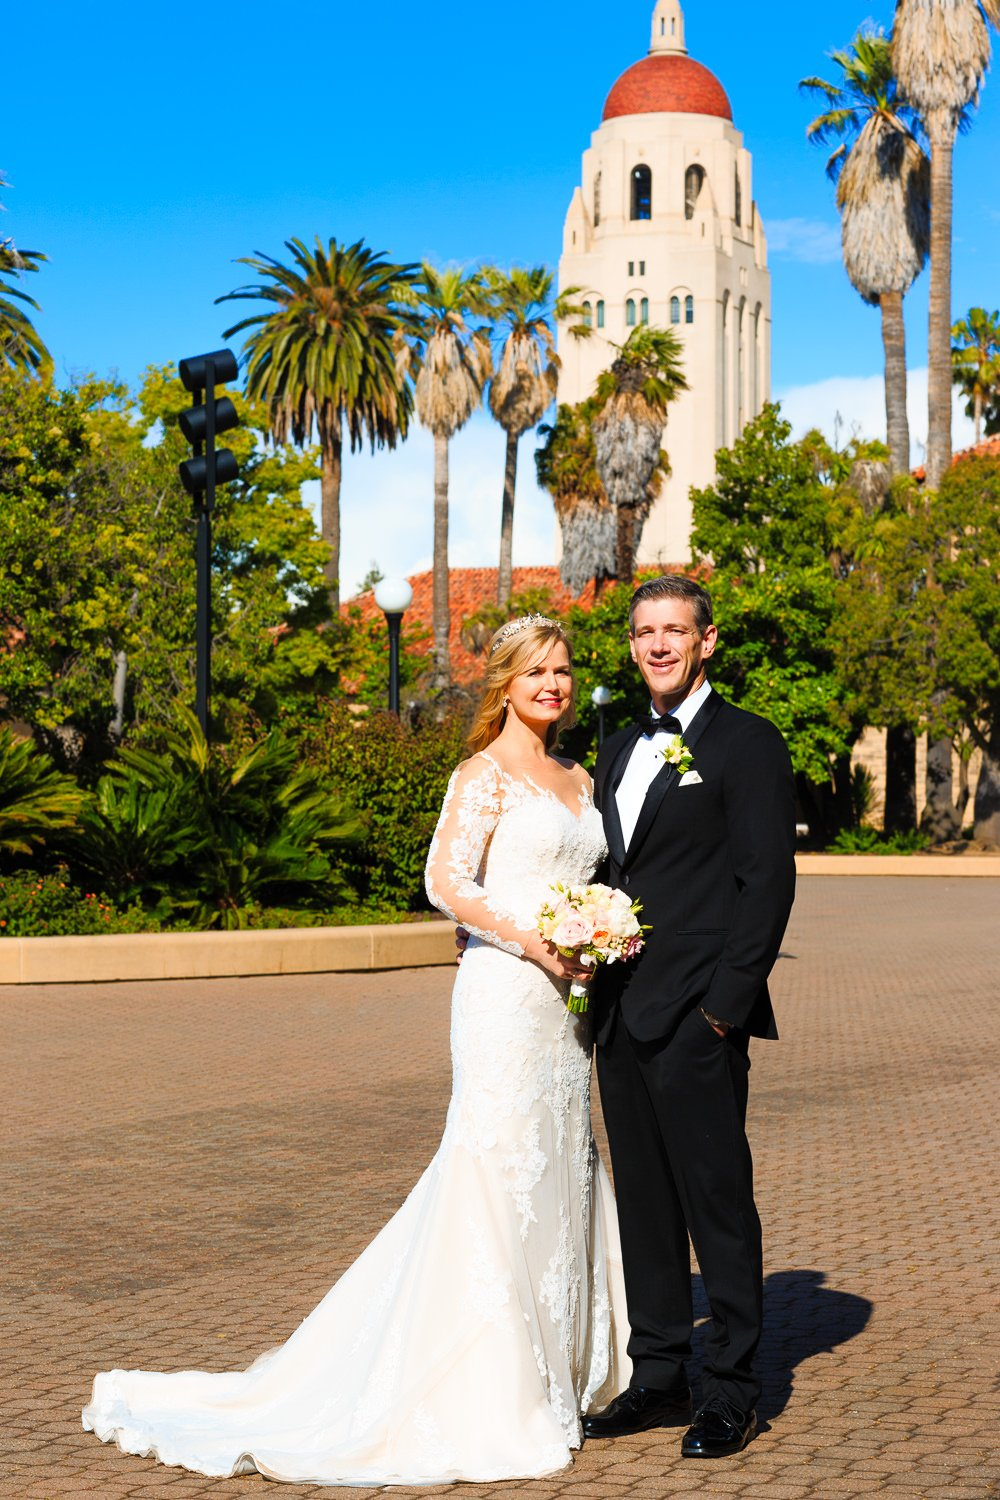 stanford-university-wedding-romantic-portraits-arpit-mehta-san-francisco-photographer-9